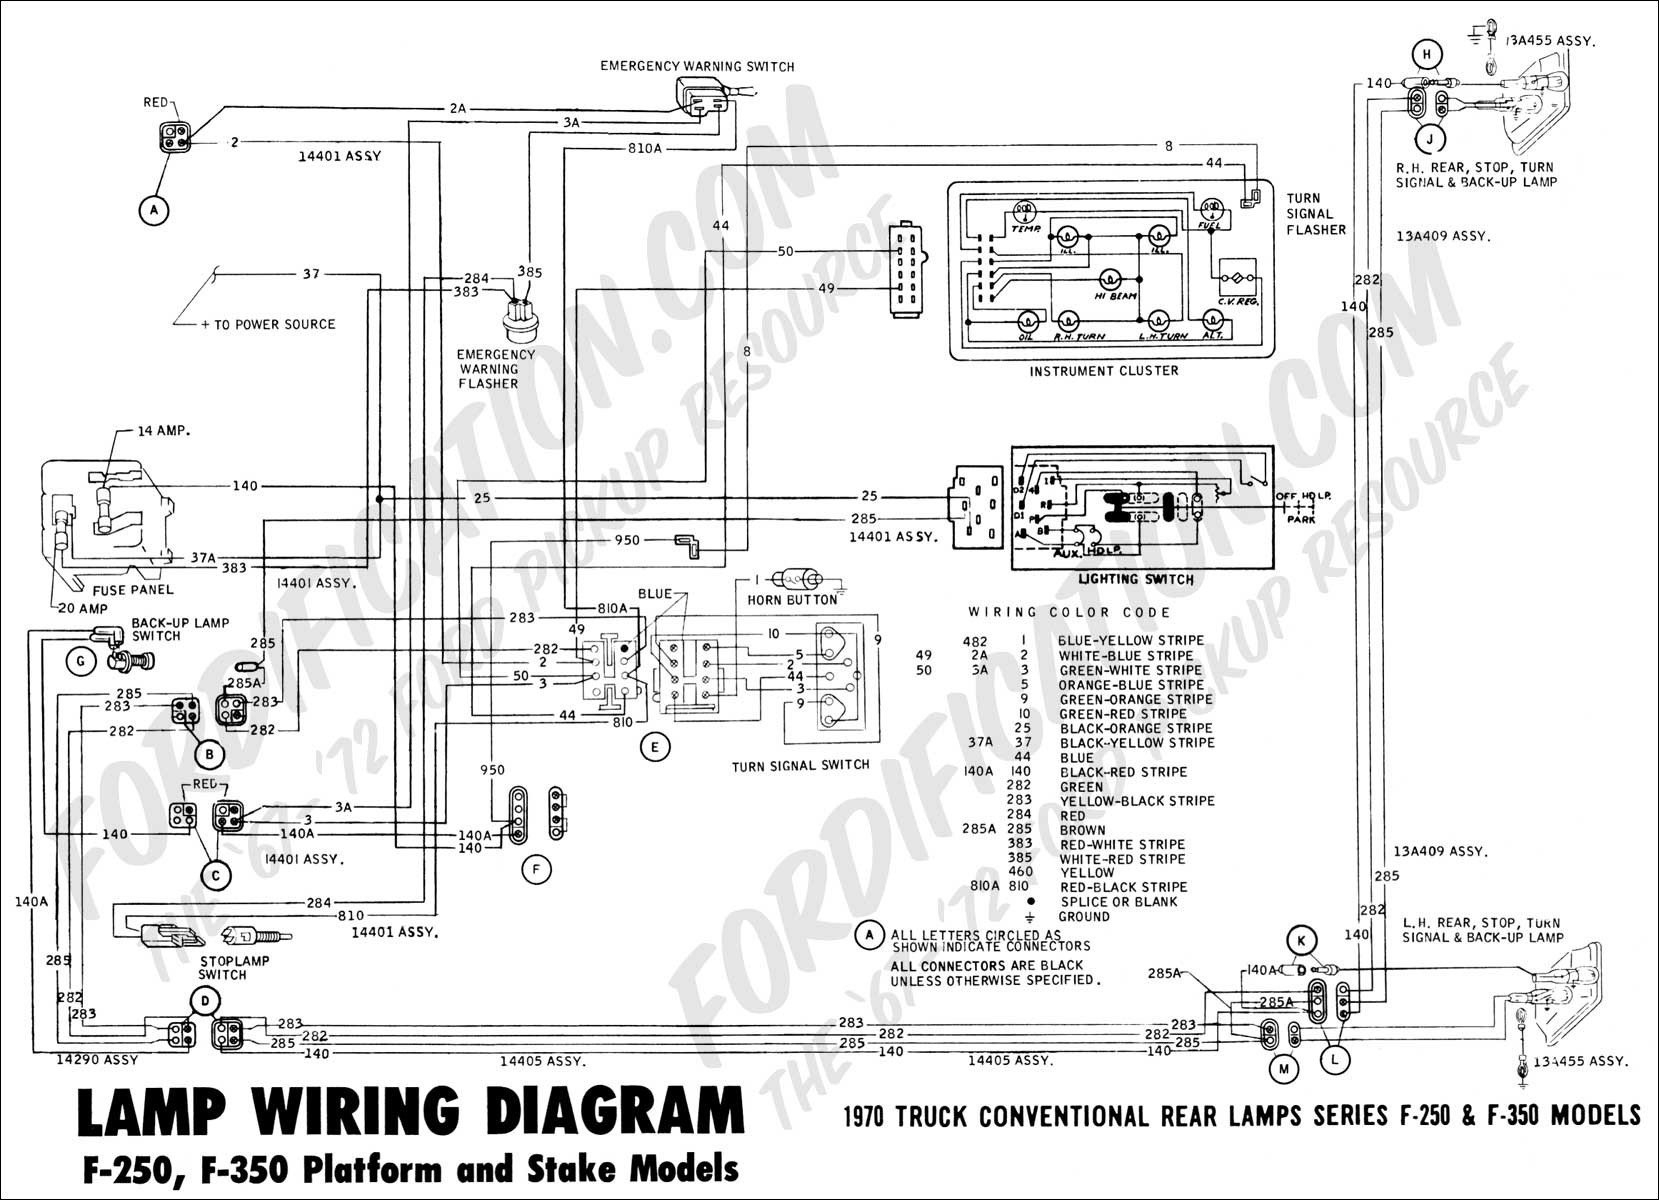 hight resolution of 2005 ford f 150 mirror wiring diagram wiring library rh 98 mac happen de 2003 gmc sierra trailer wiring diagram 2008 ford expedition trailer wiring diagram